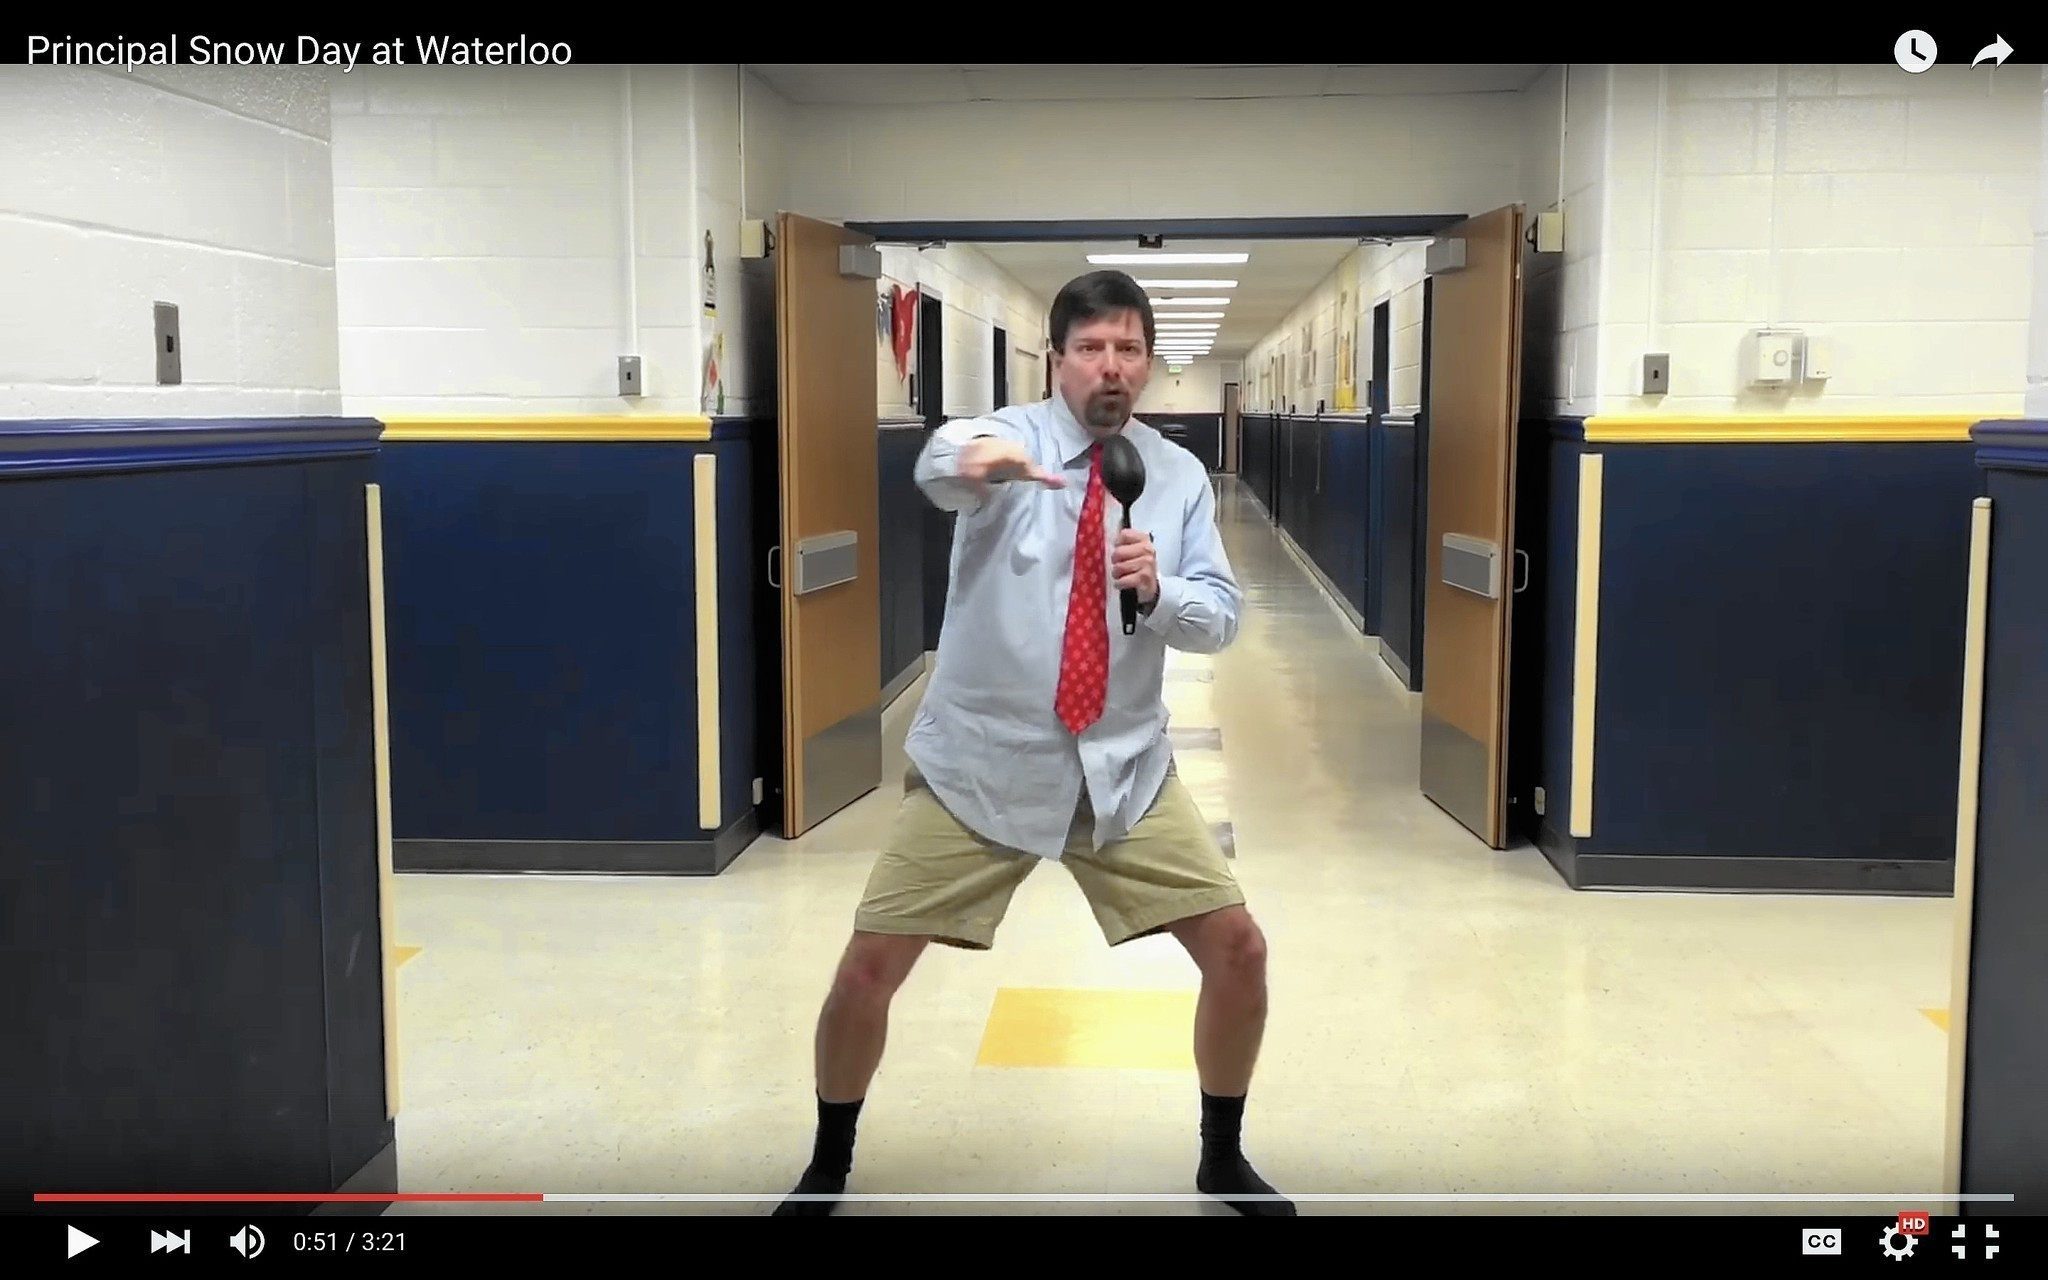 Waterloo Elementary Principals Snow Day Video Is Viral